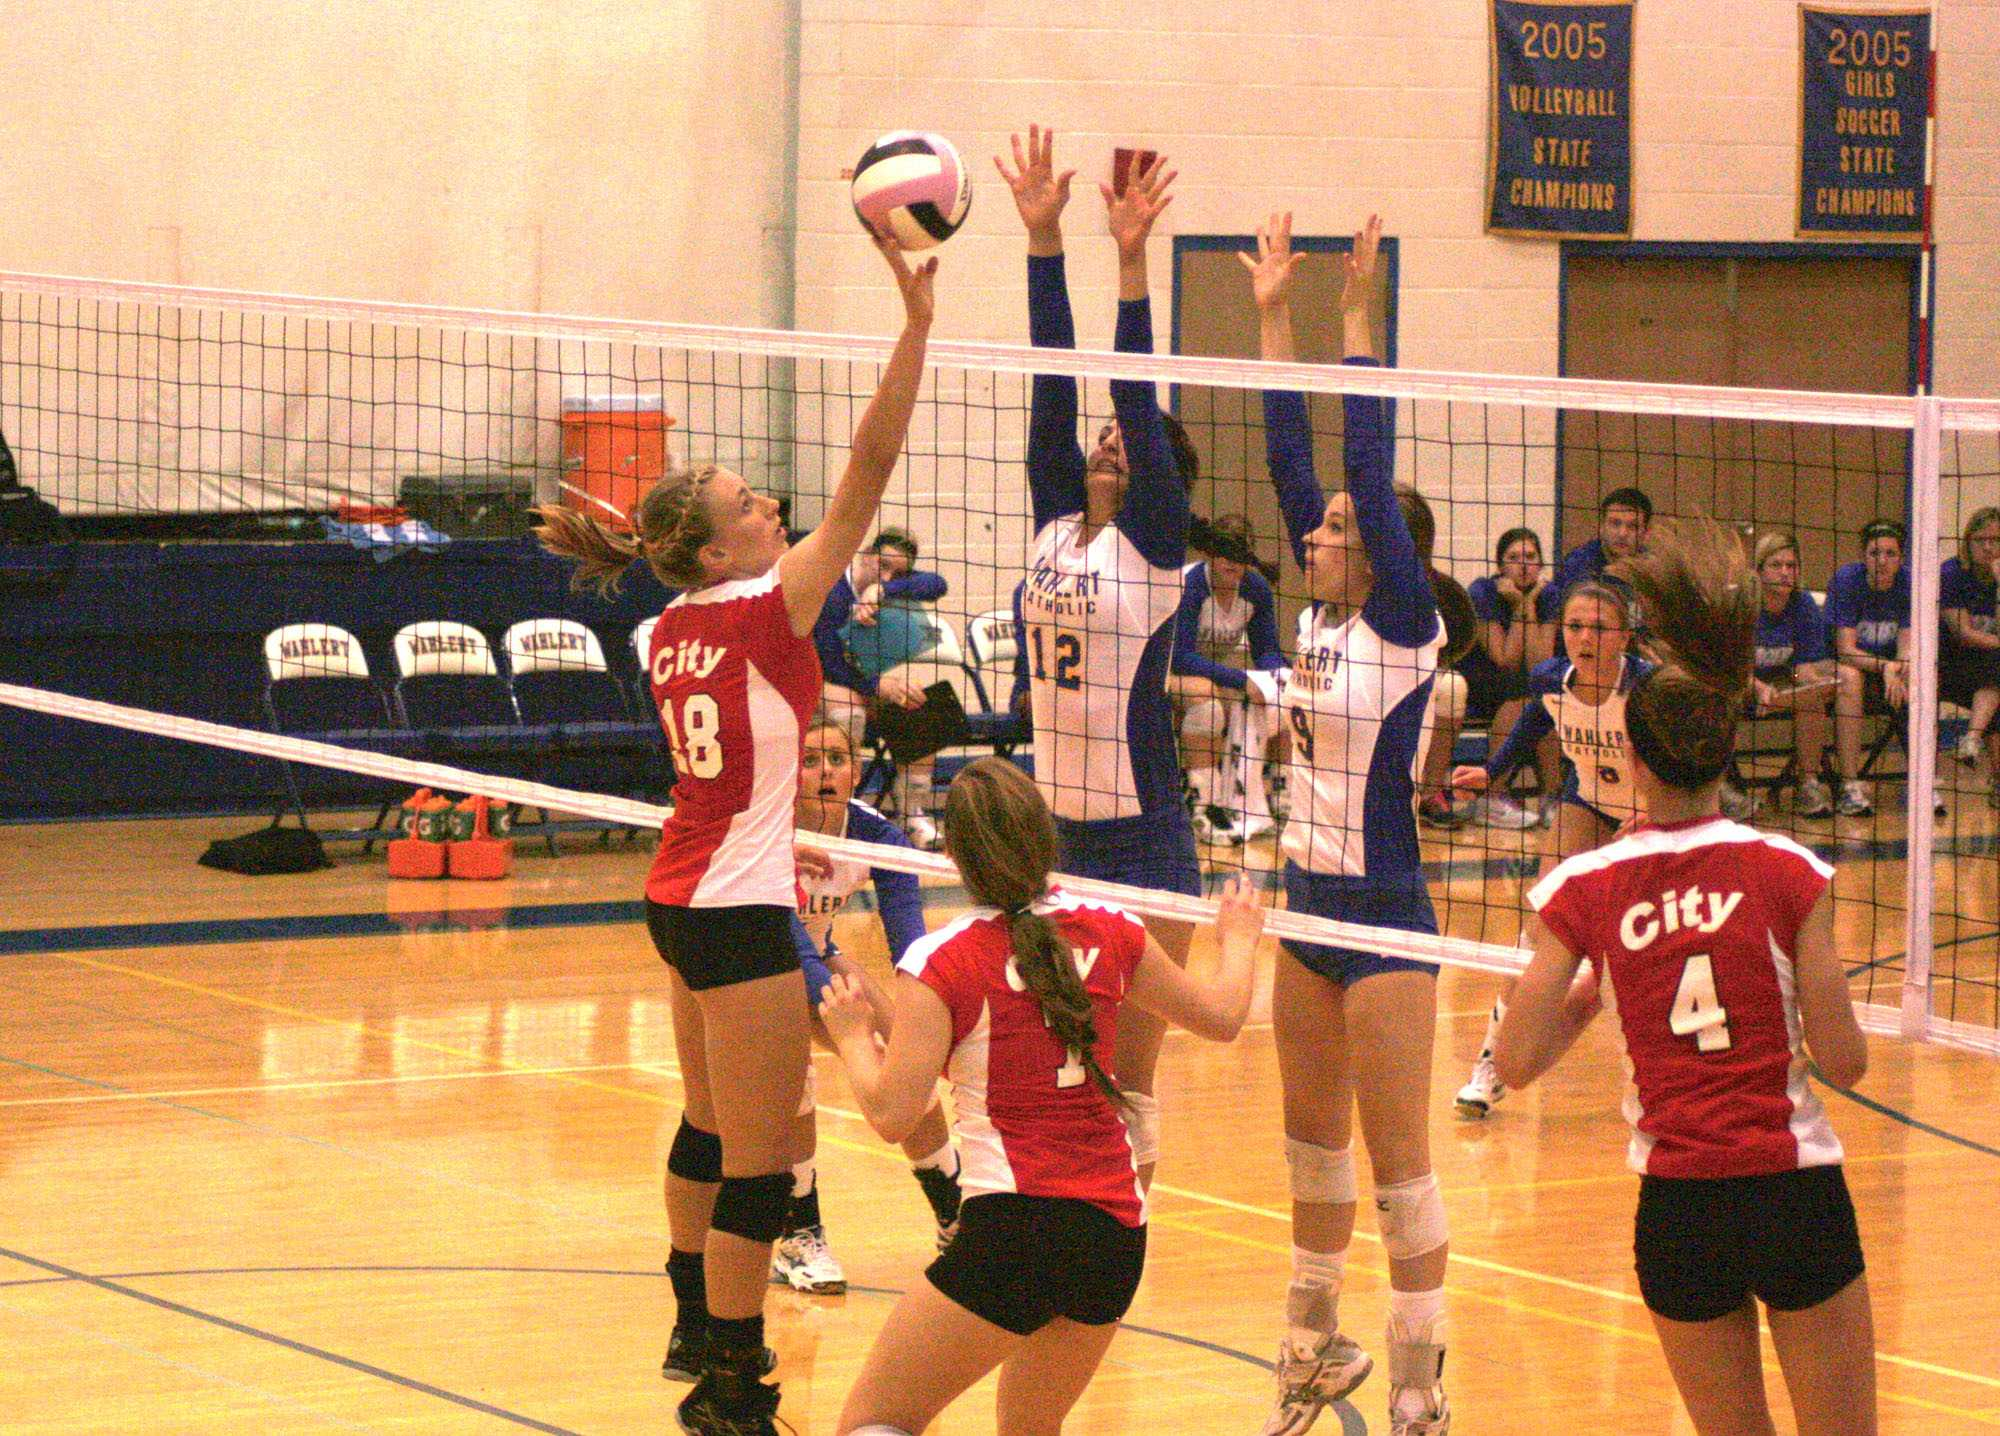 Michaela Nelson '14 tips the ball during the second set on Tuesday.